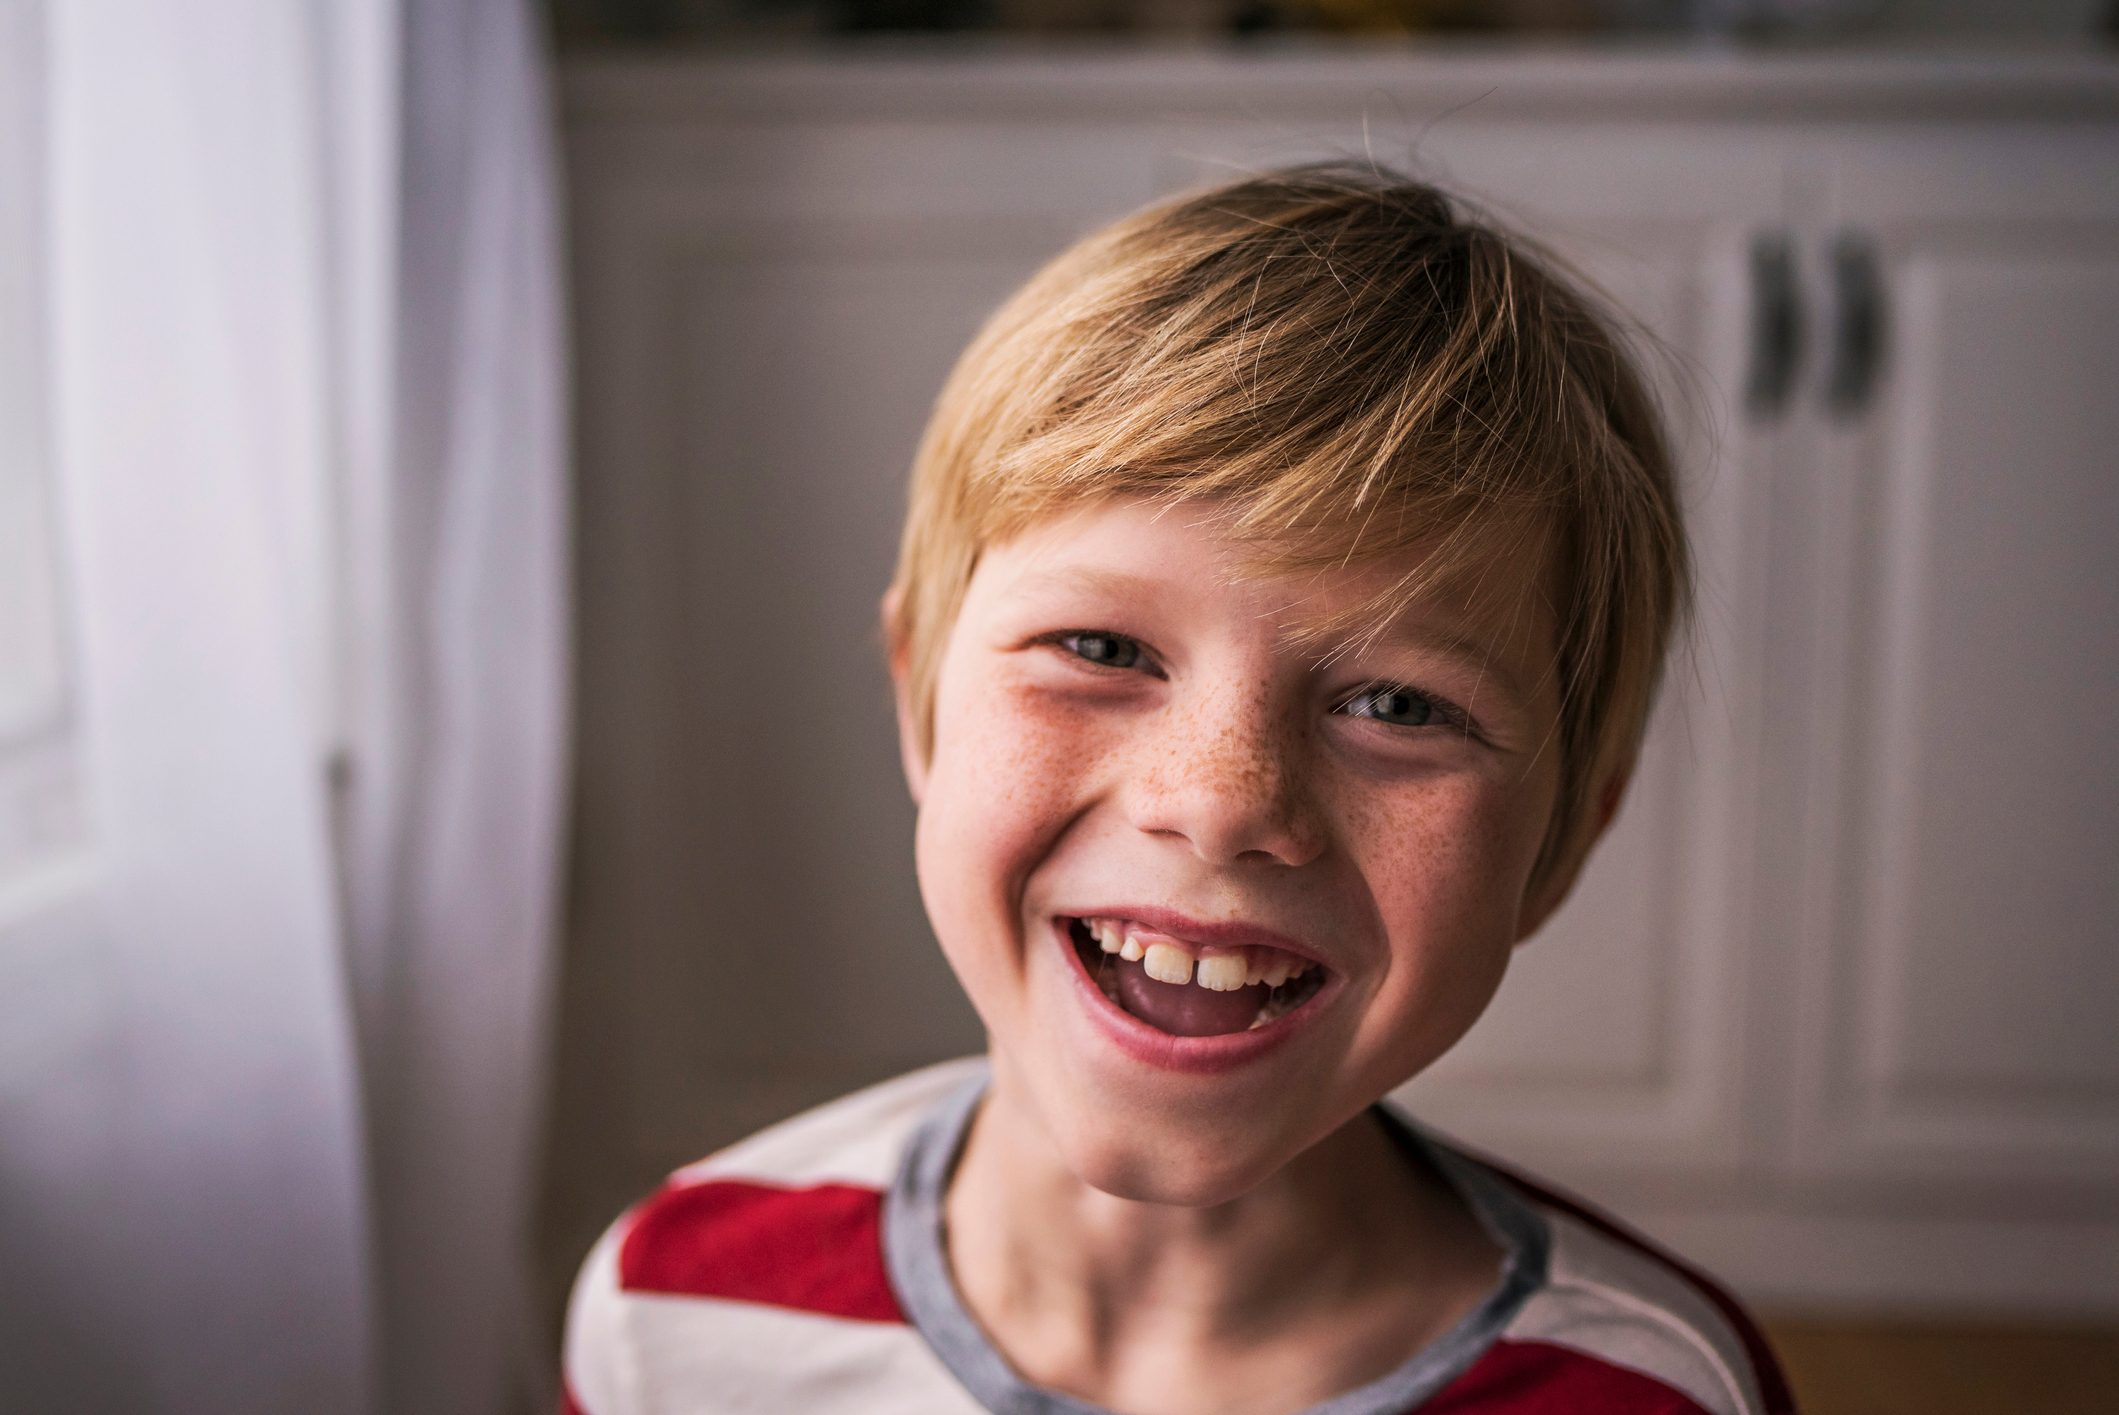 Portrait of a smiling boy with freckles